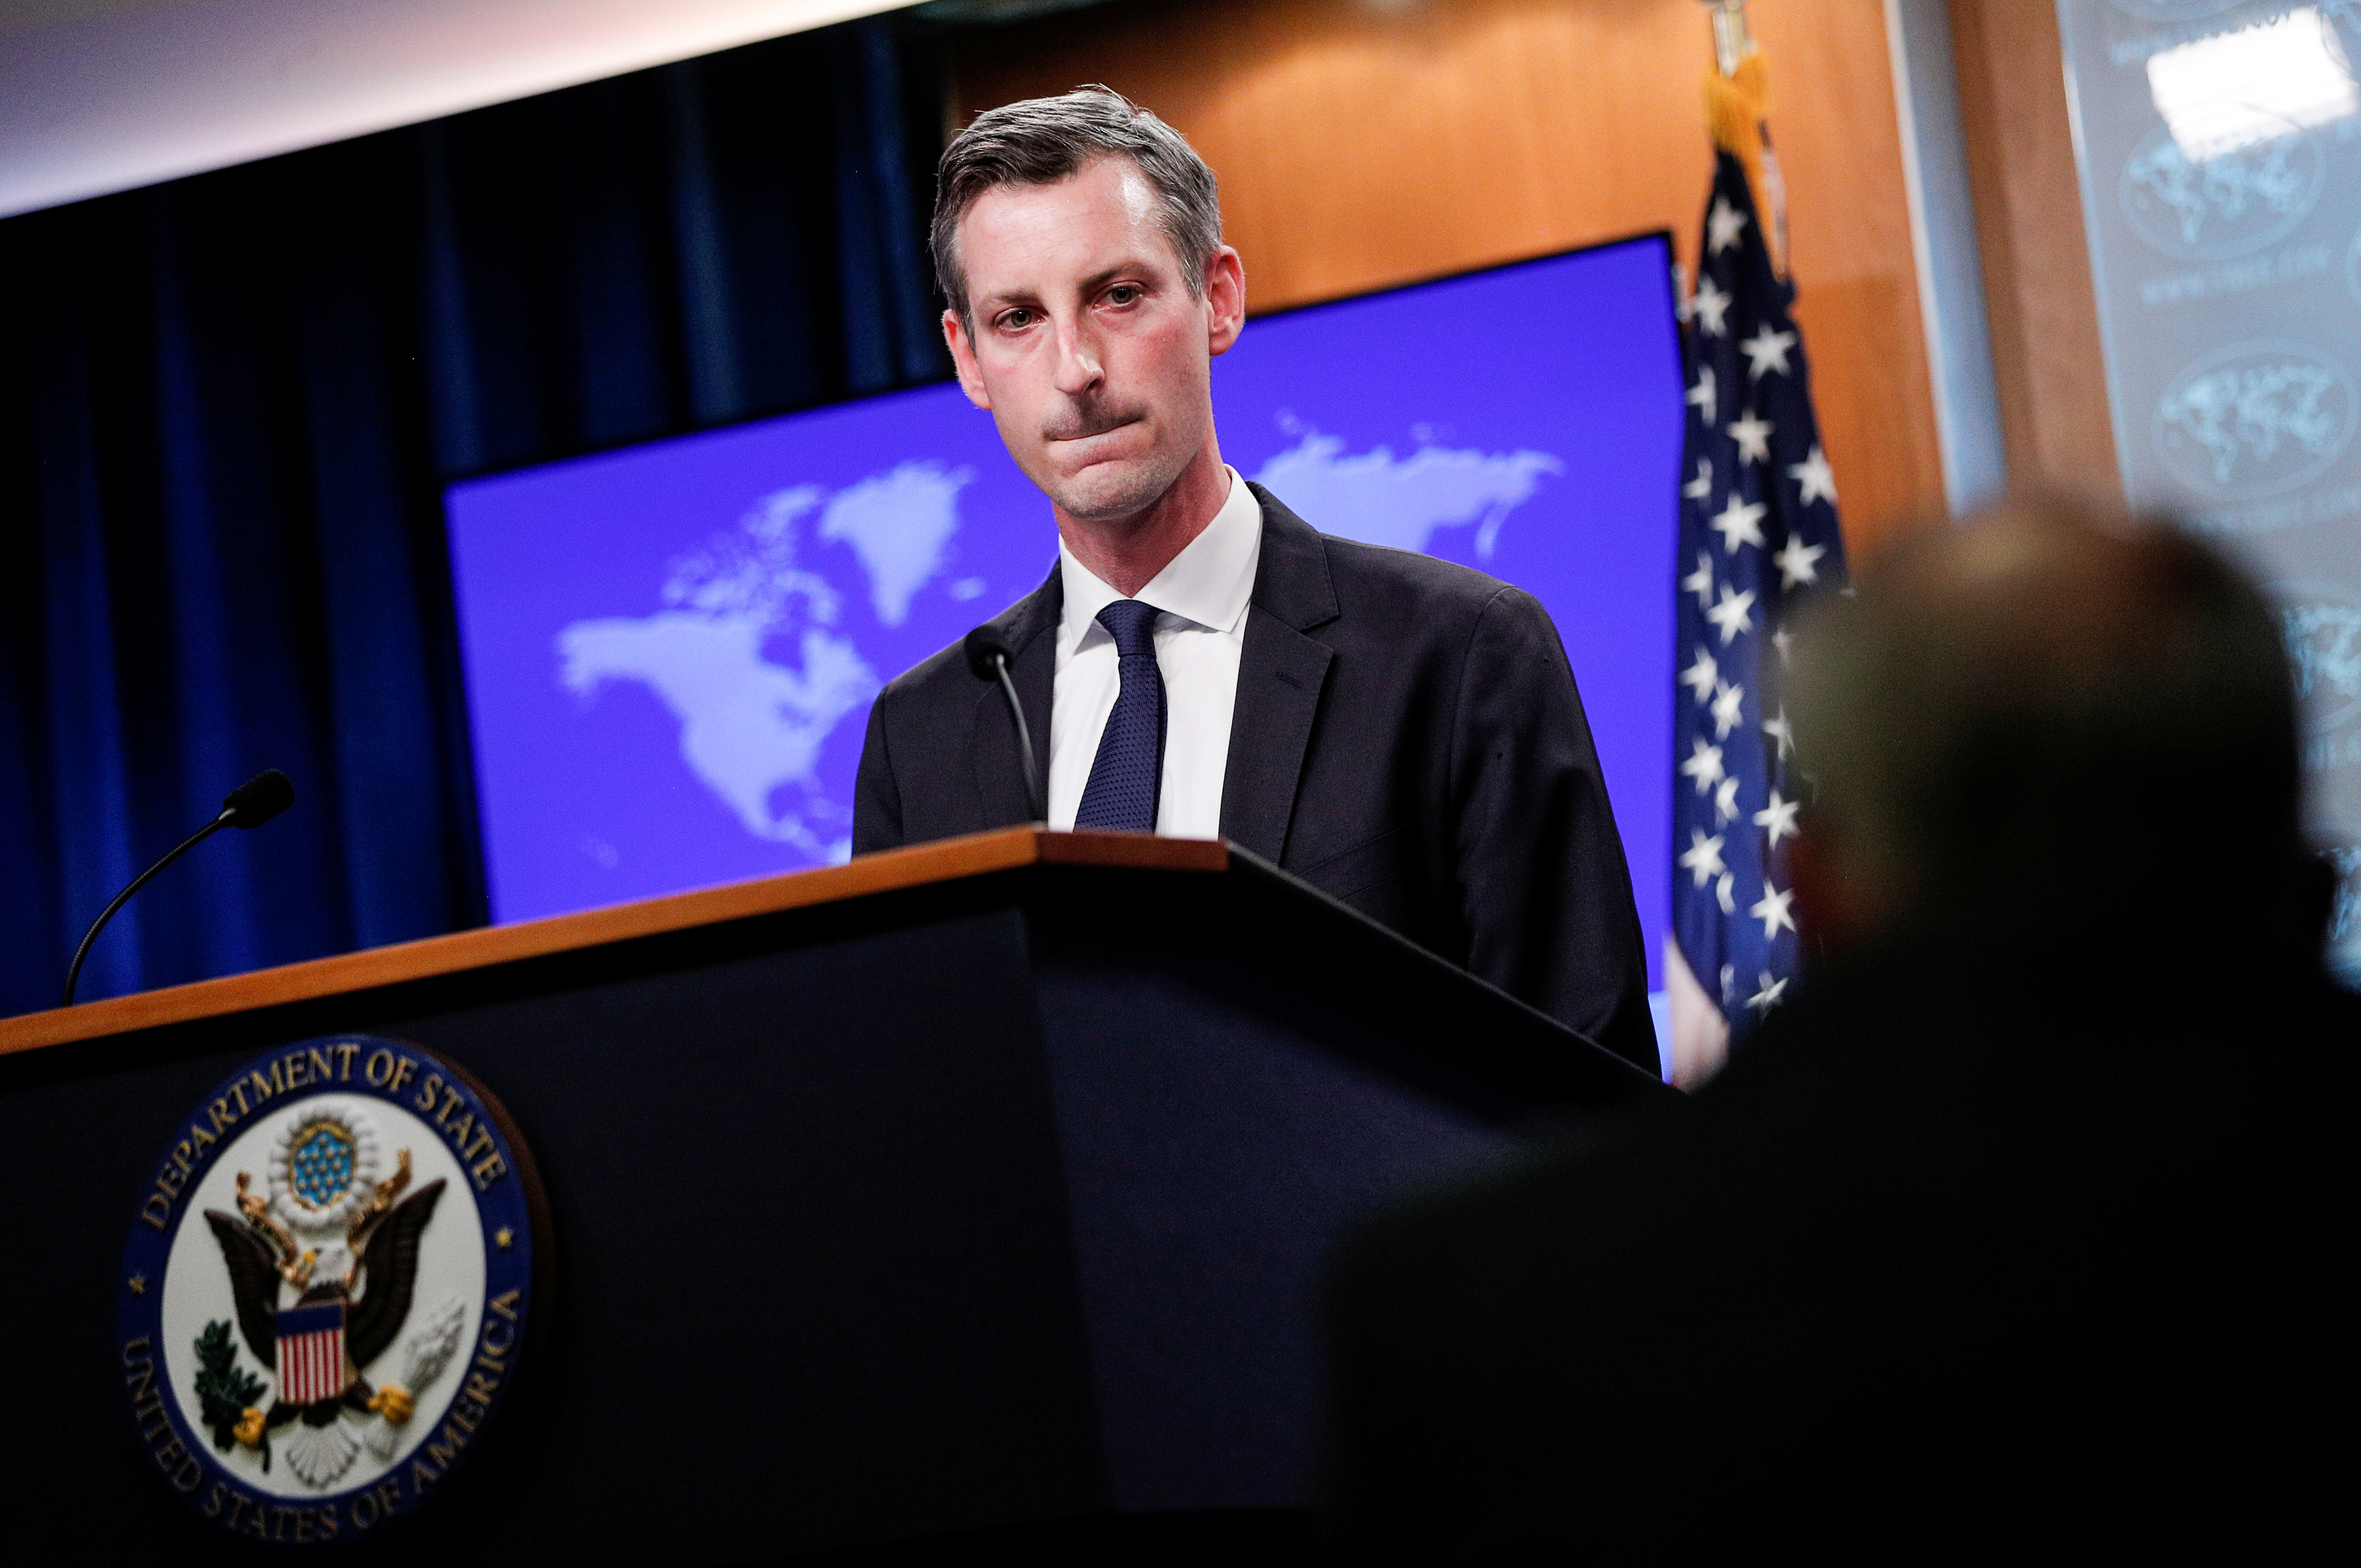 U.S. State Department Spokesman Ned Price faces reporters during a news briefing at the State Department in Washington, U.S., March 1, 2021. REUTERS/Tom Brenner/Pool